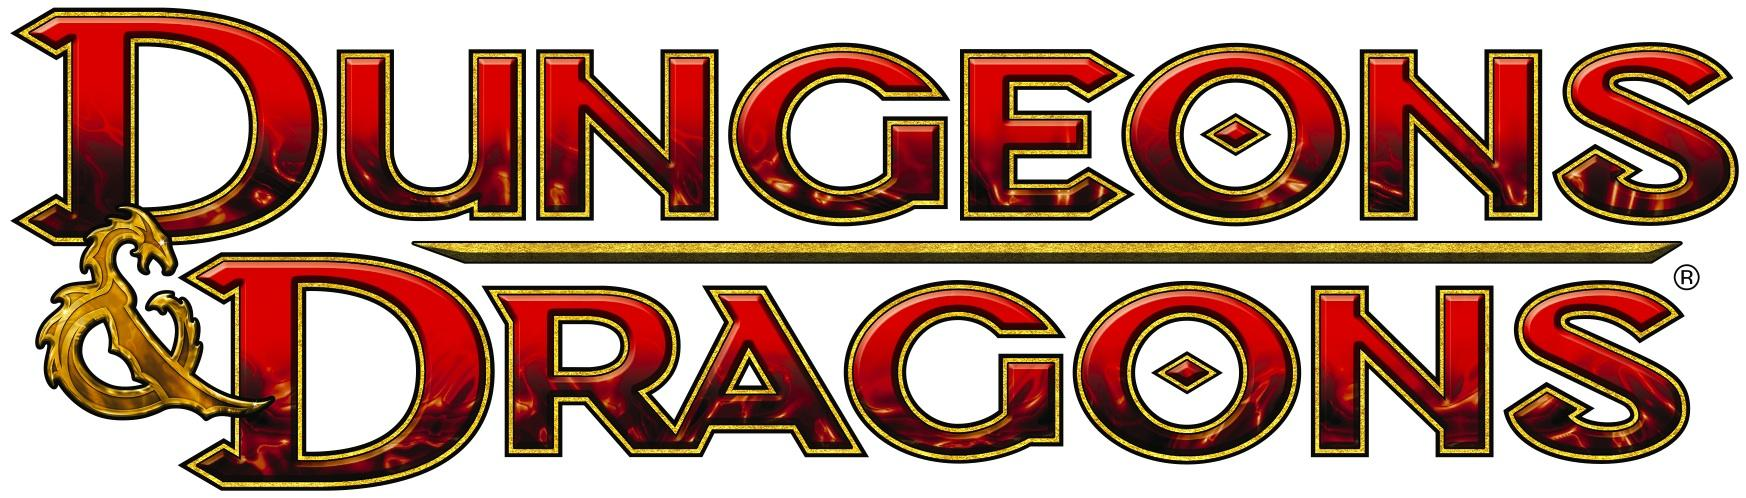 Dungeons & Dragons Backgrounds, Compatible - PC, Mobile, Gadgets| 1746x498 px